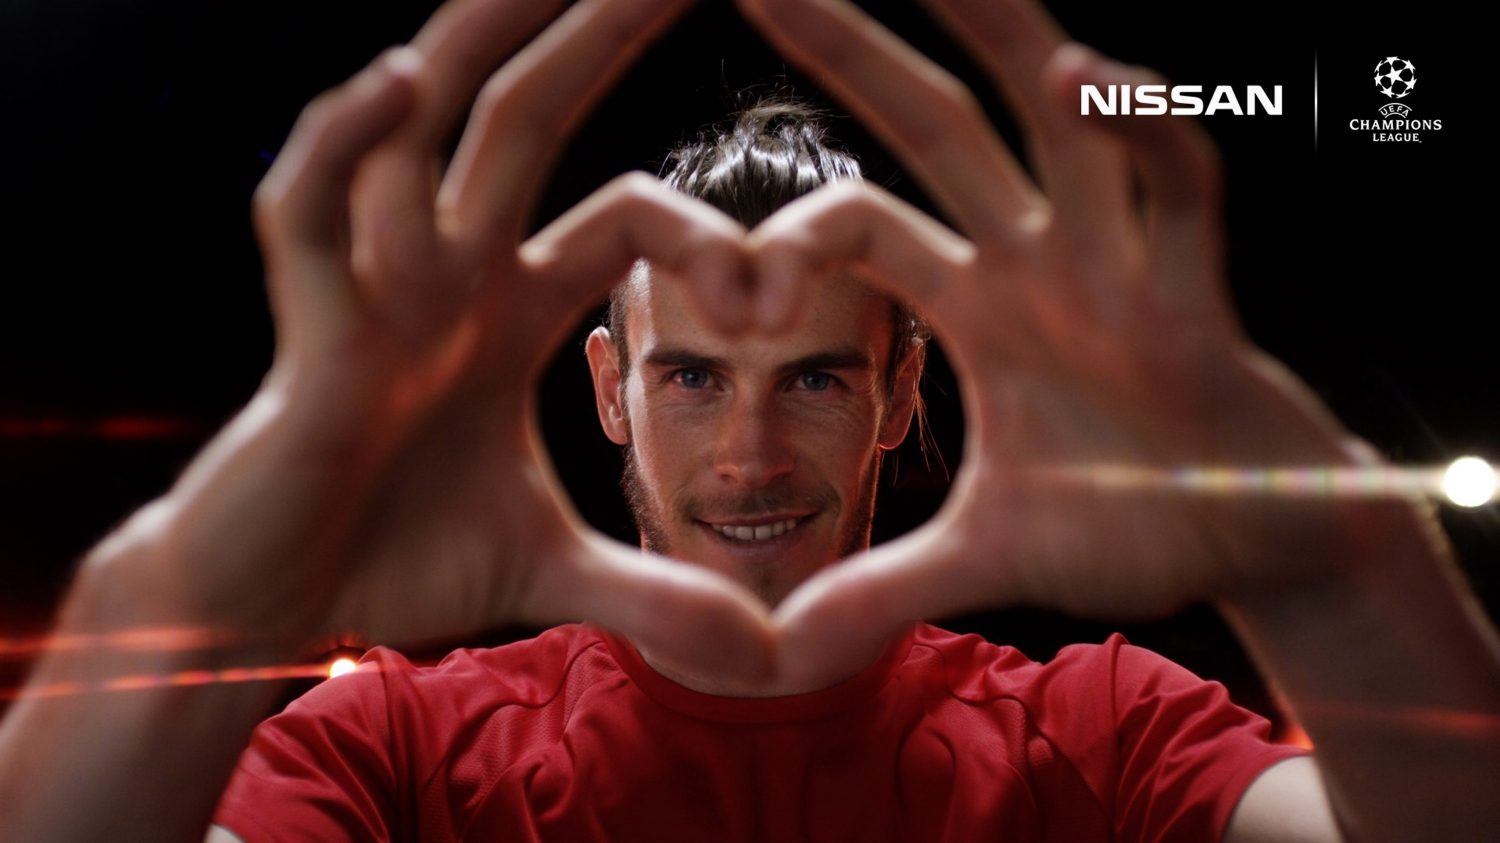 Nissan Unveils UEFA Champions League Stars Gareth Bale And Sergio Agüero As New Global Ambassadors